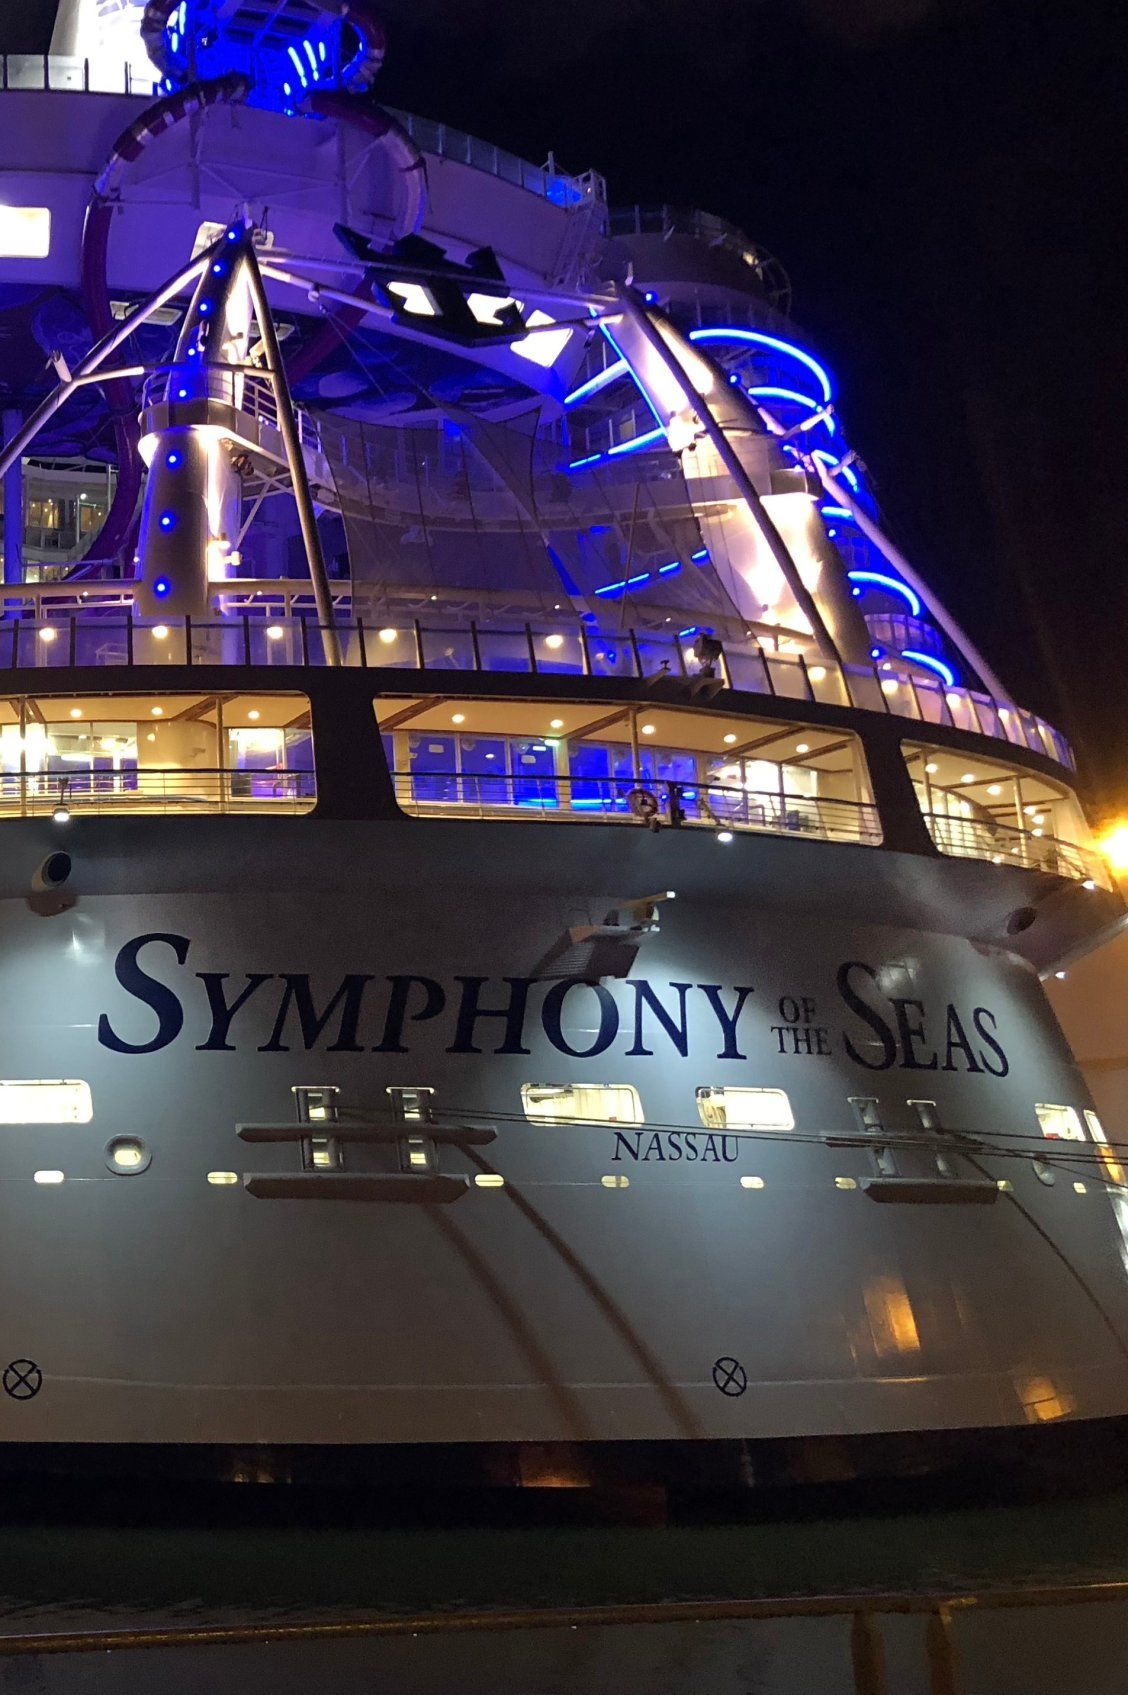 Symphony of the Seas | Cruise with Royal Caribbean onboard